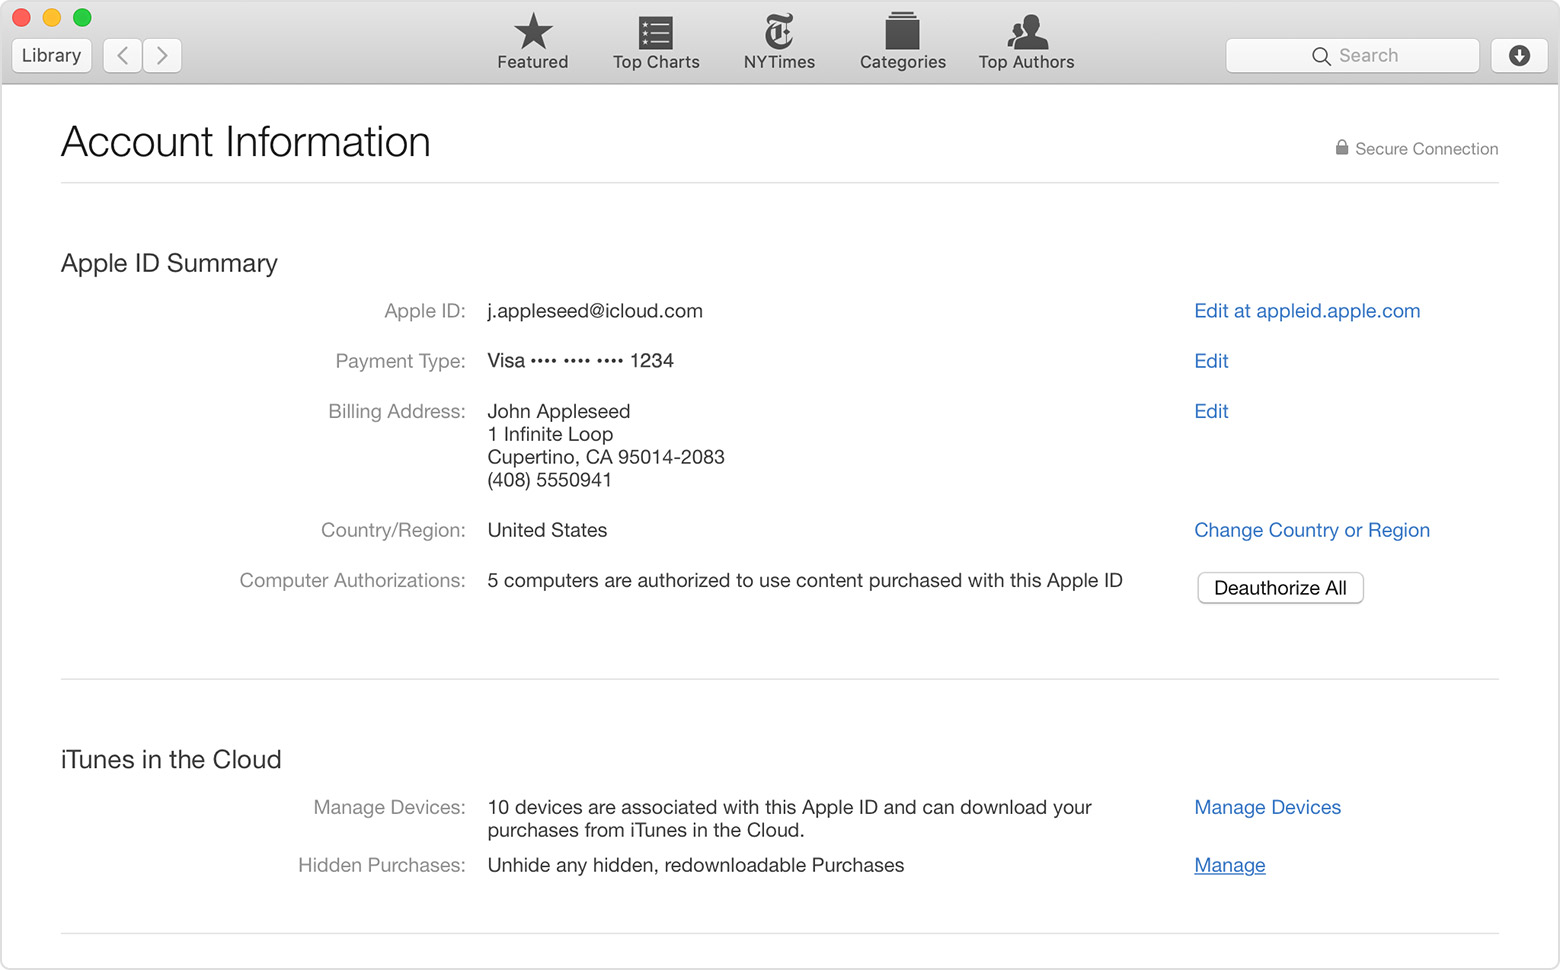 The Account Information page in Apple Books.